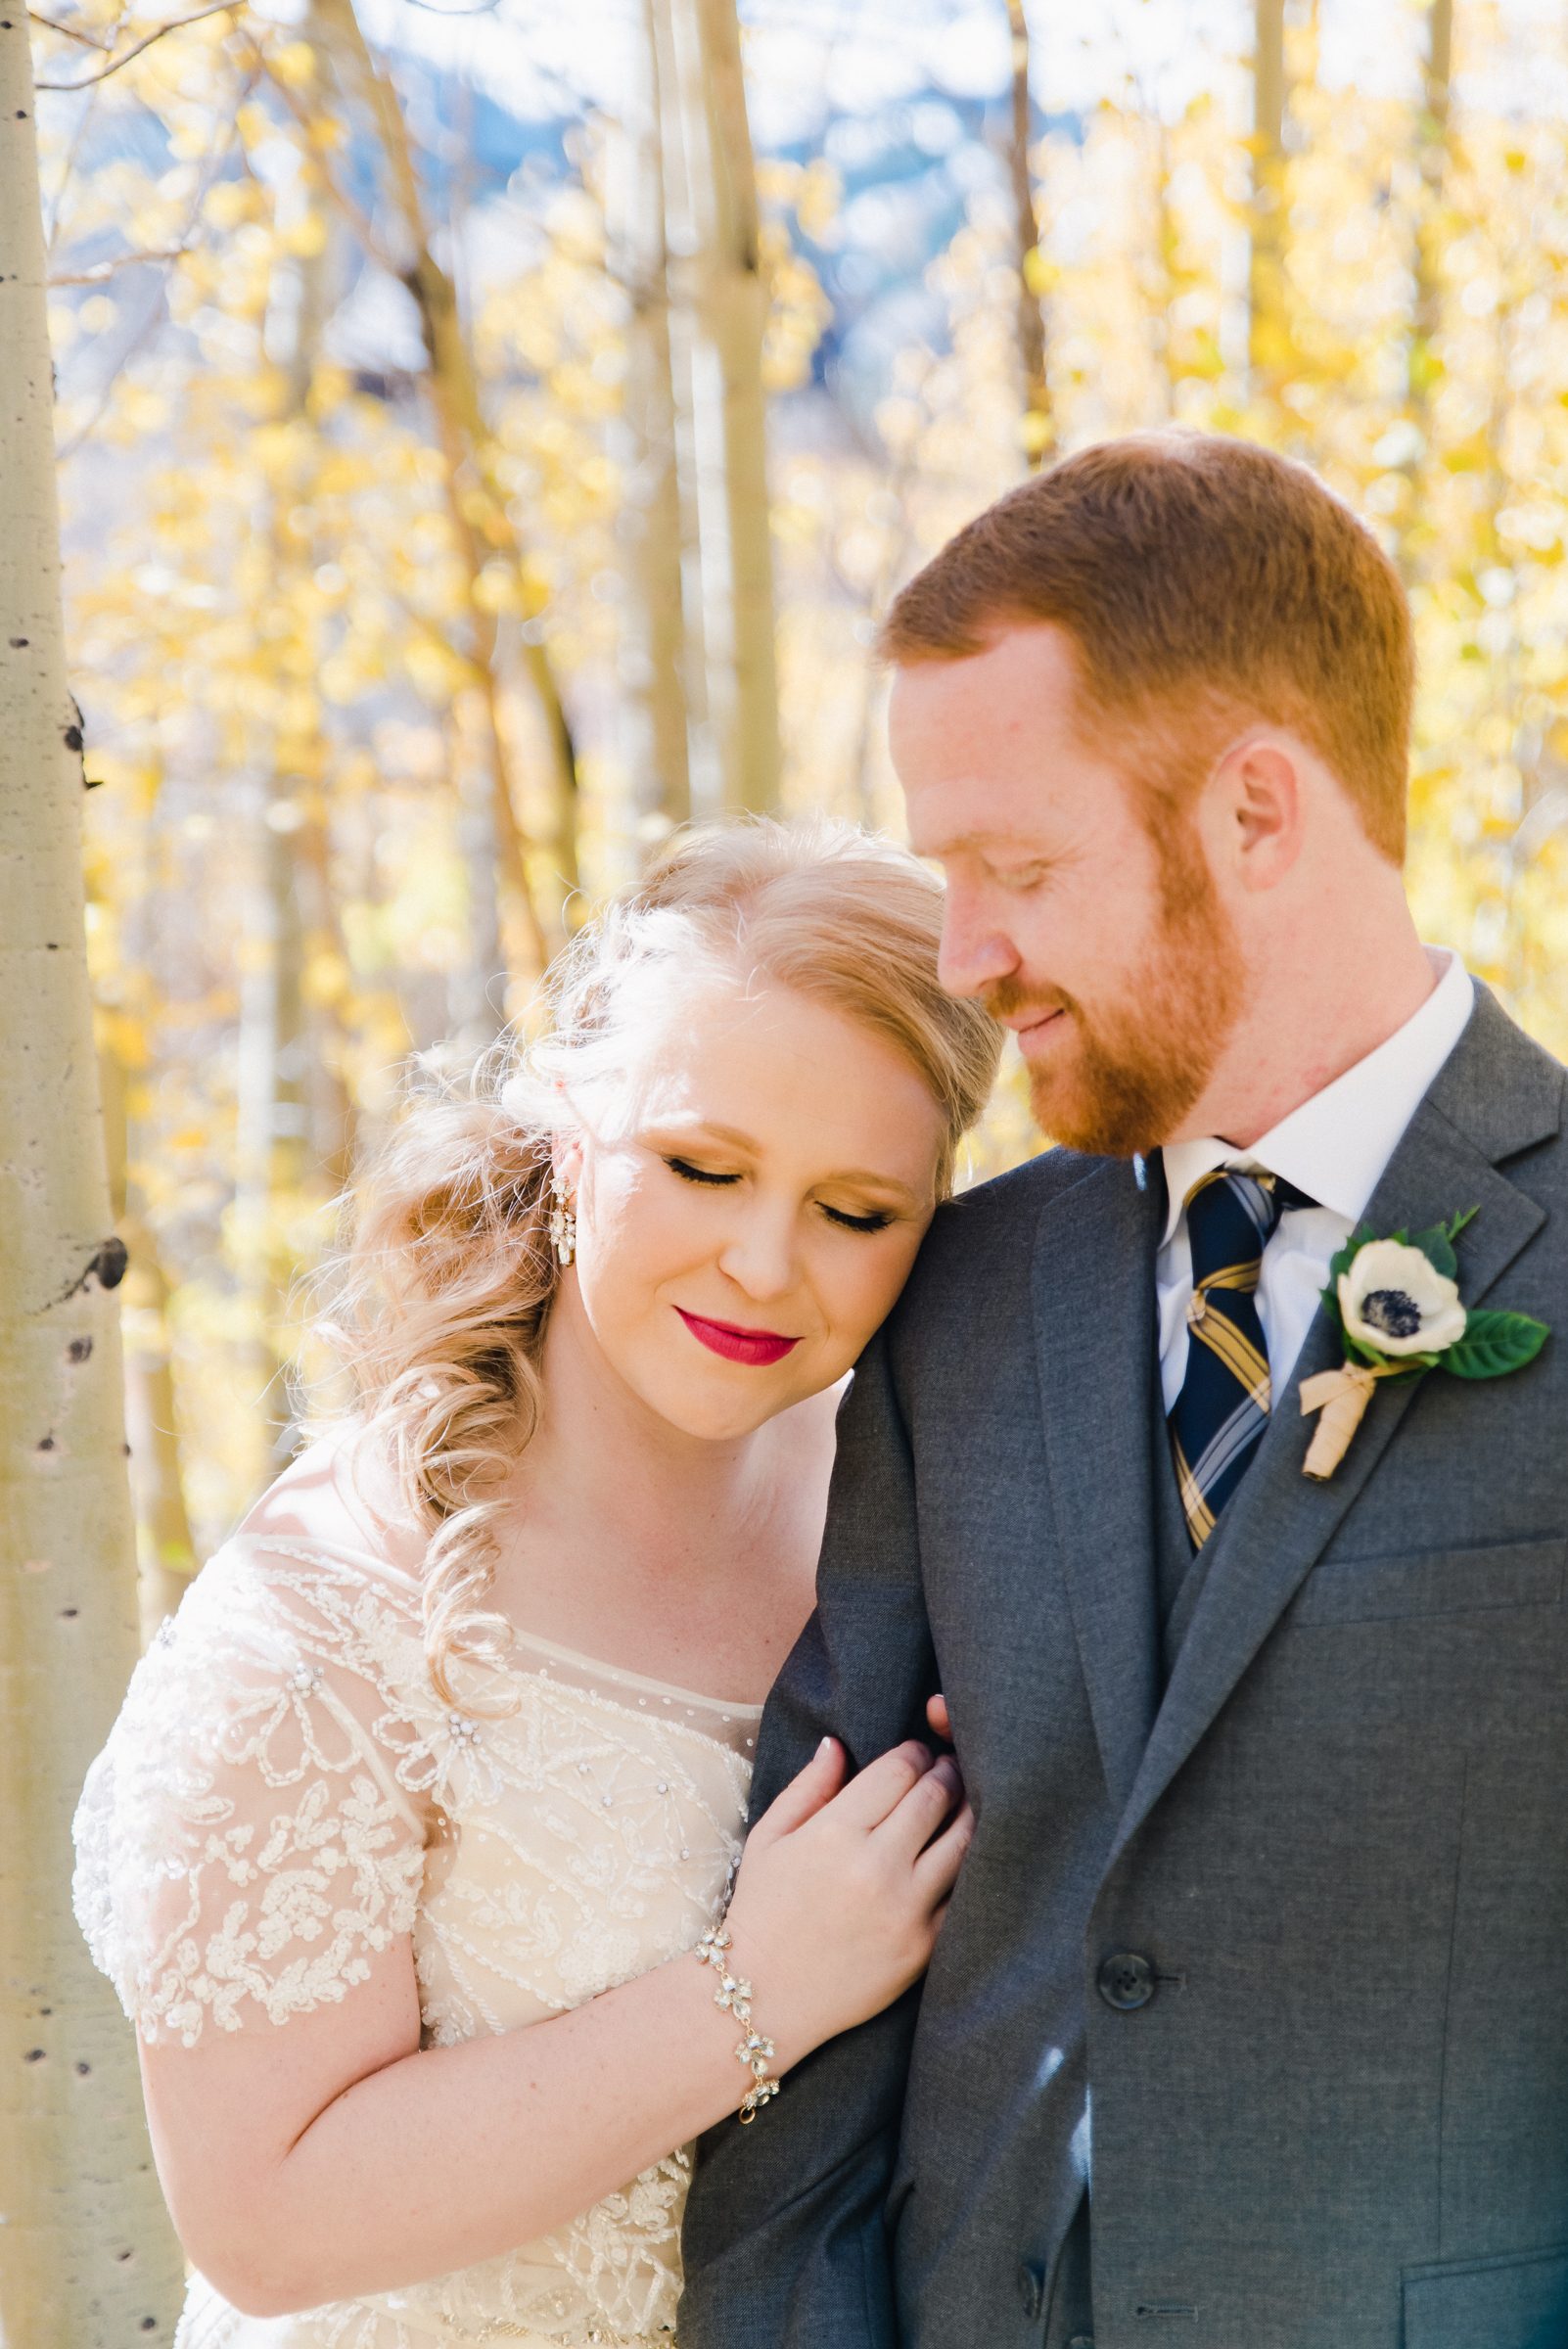 Fall Mountain Wedding at the Breckenridge Nordic Center | Josie V Photography